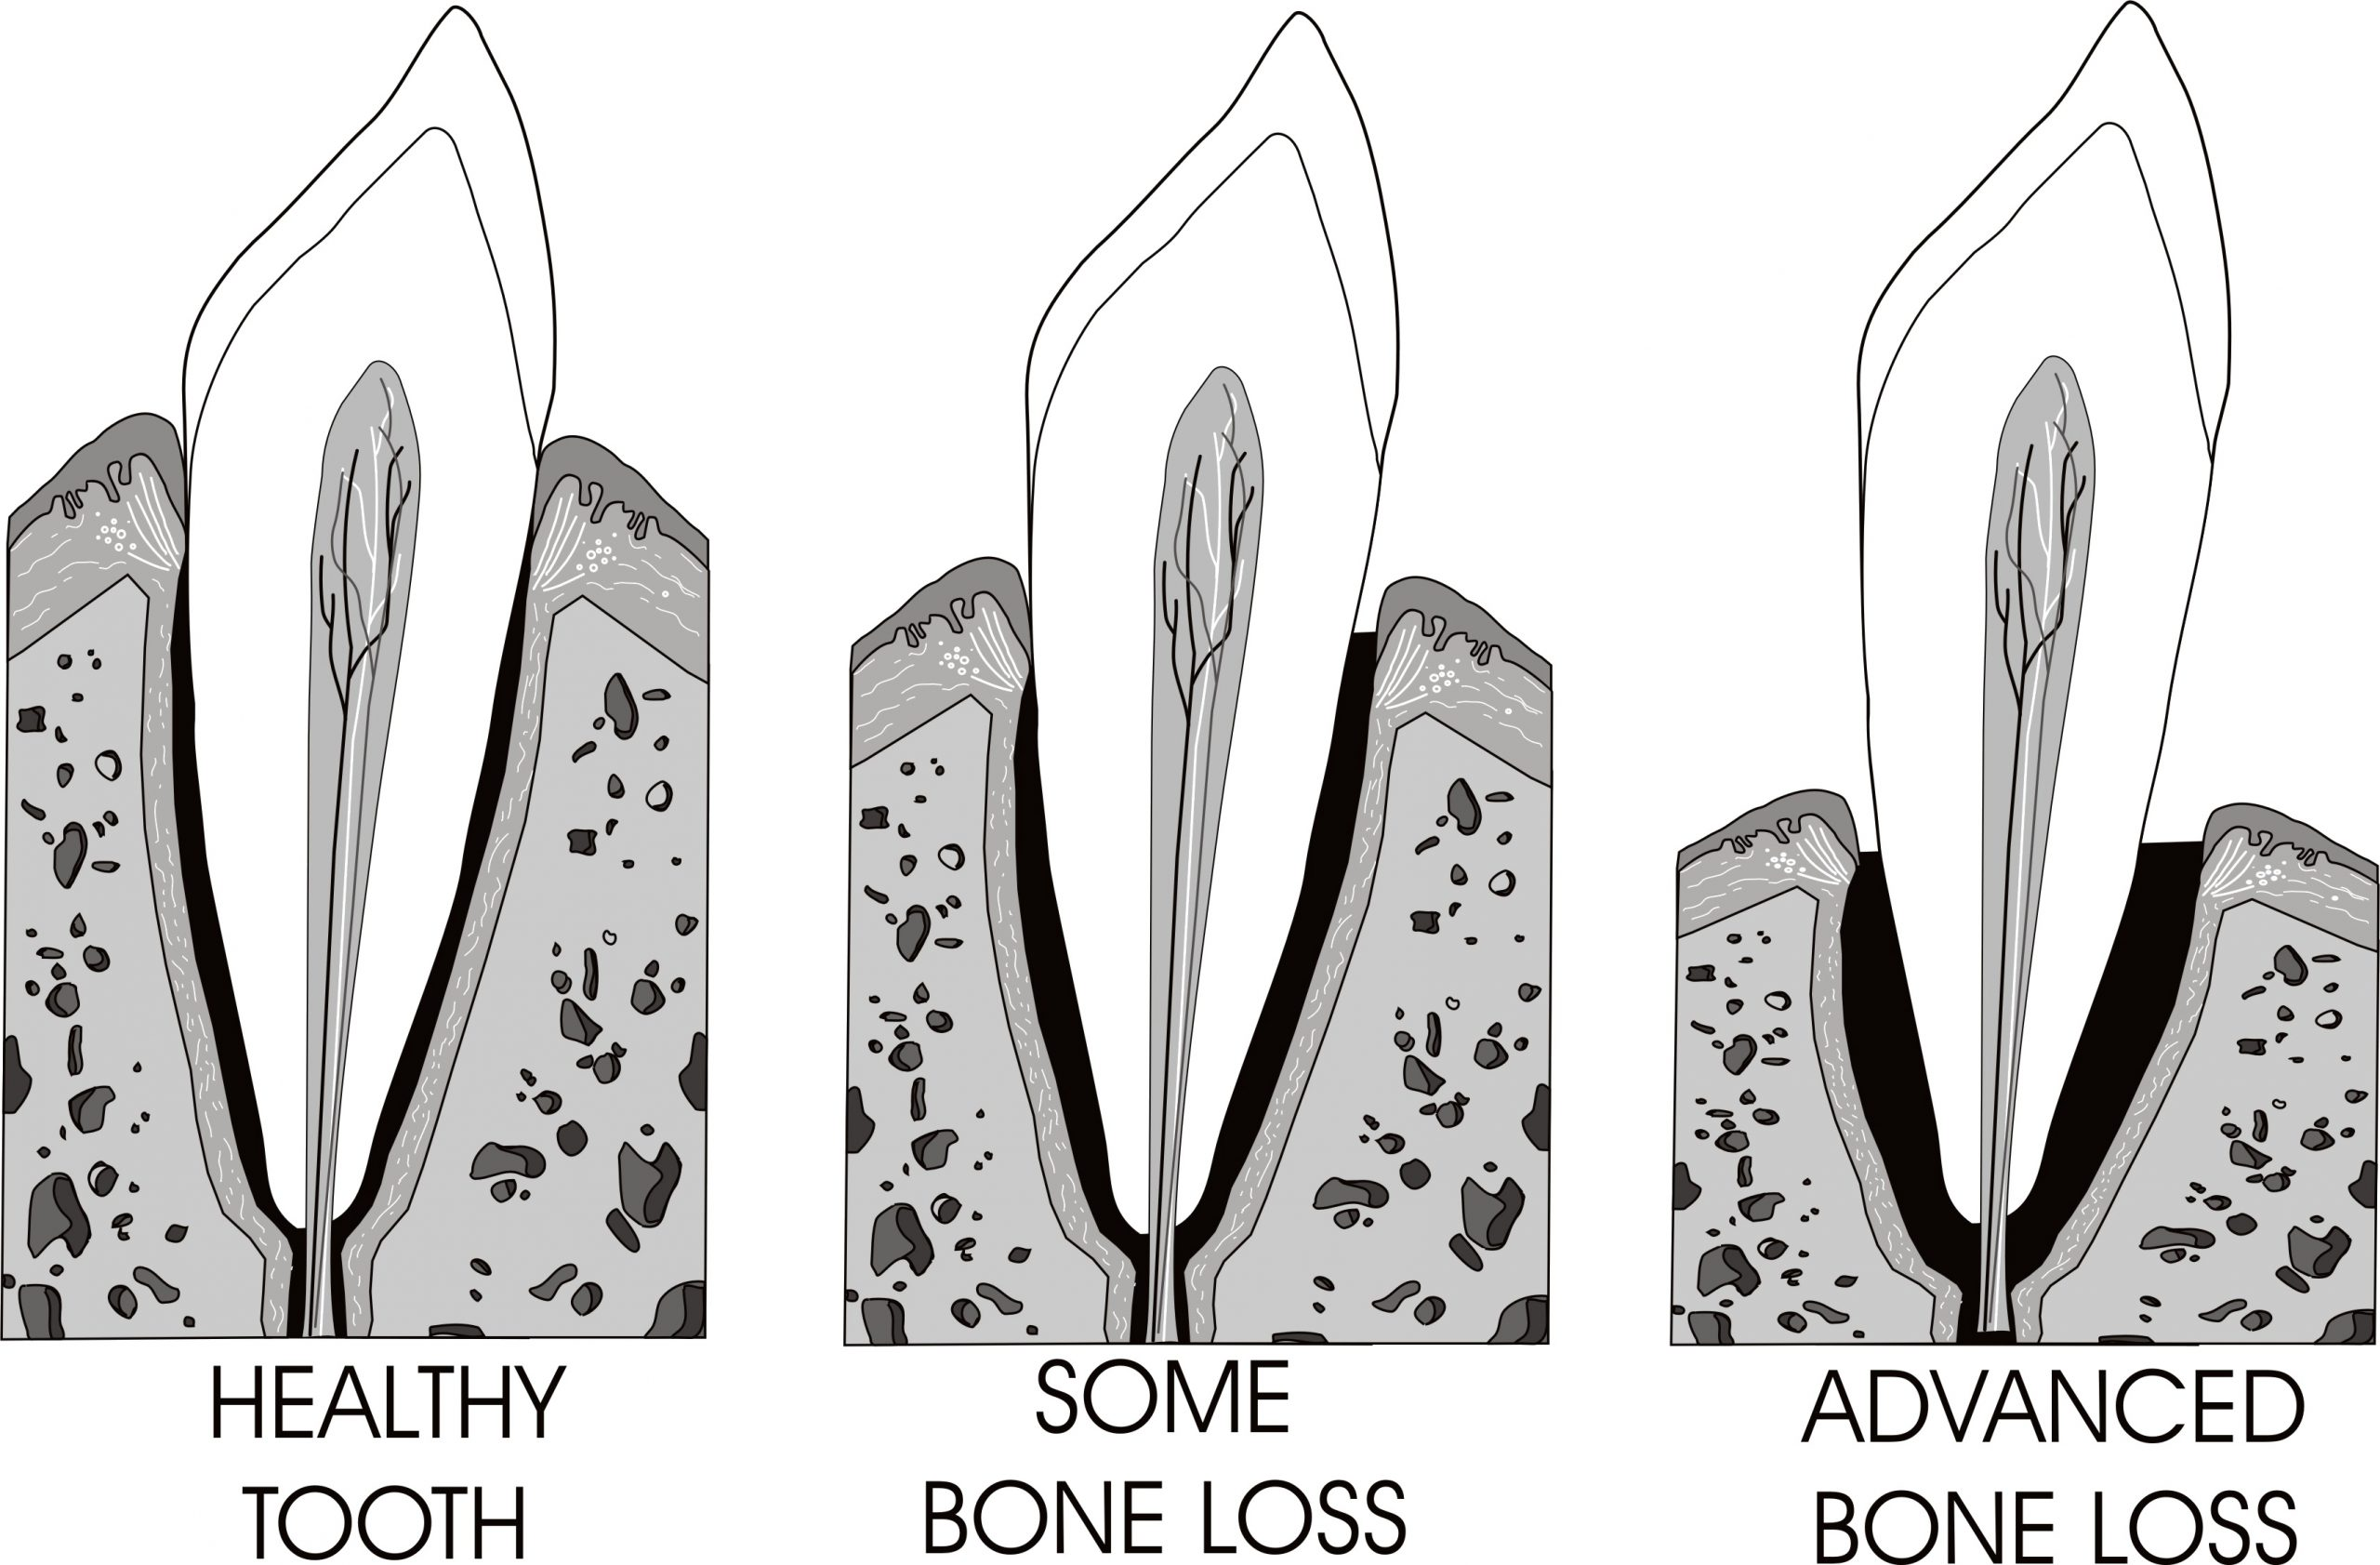 Can this tooth be saved? Illustration of healthy tooth, tooth with some bone loss, tooth with advanced bone loss